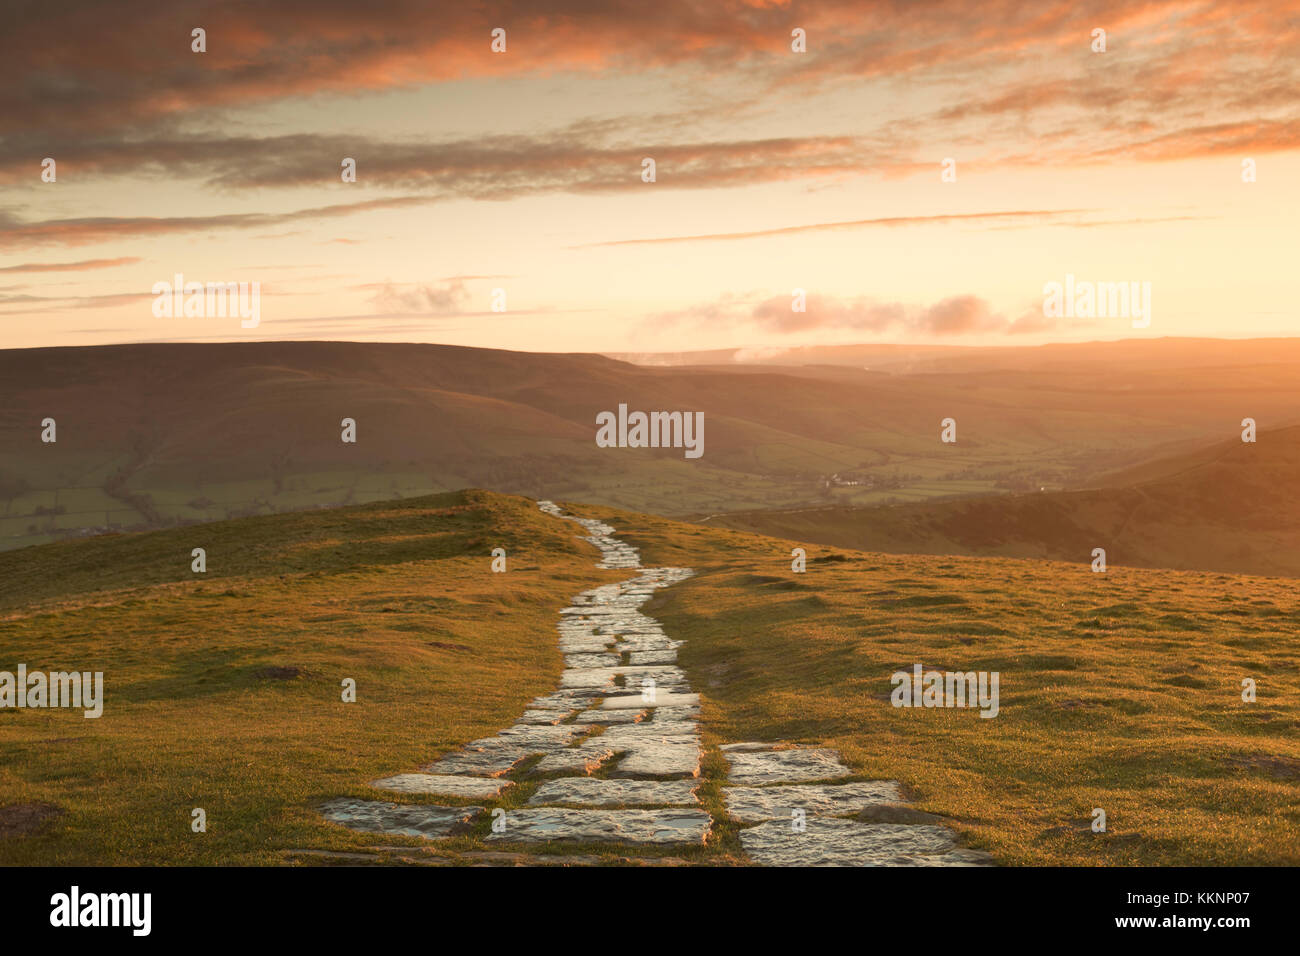 UK, Mam Tor, the pathway along the 'Great Ridge' from Mam Tor. - Stock Image